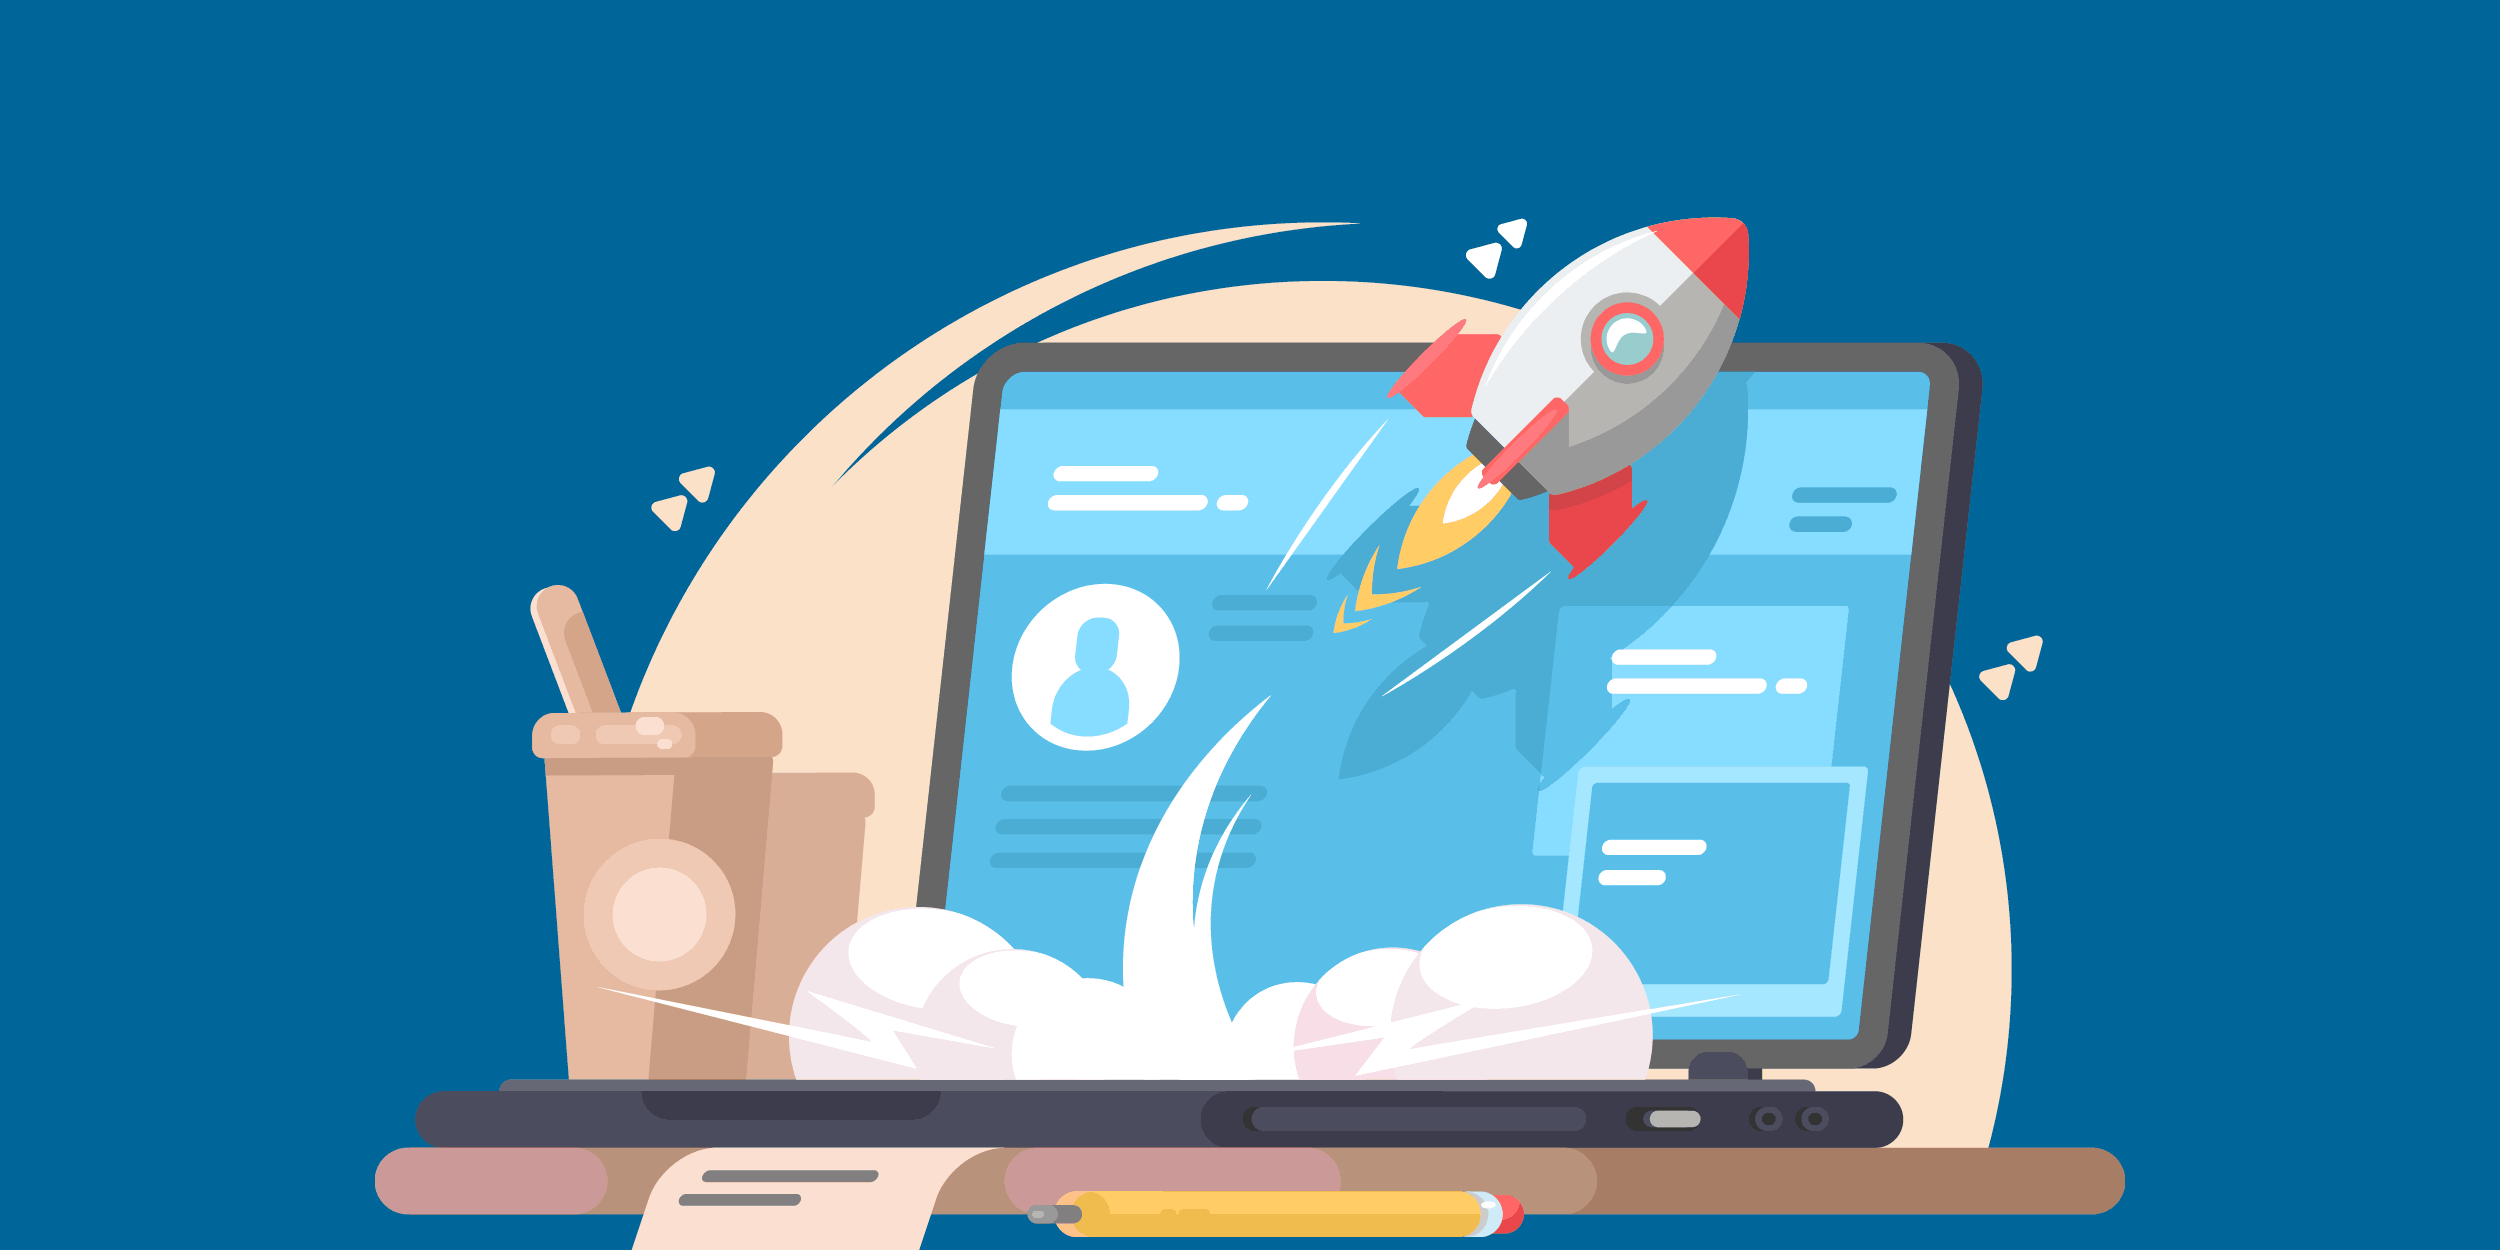 illustration of a rocket launching from a laptop, representing how a successful nonprofit program would assess its constituents' needs before launching